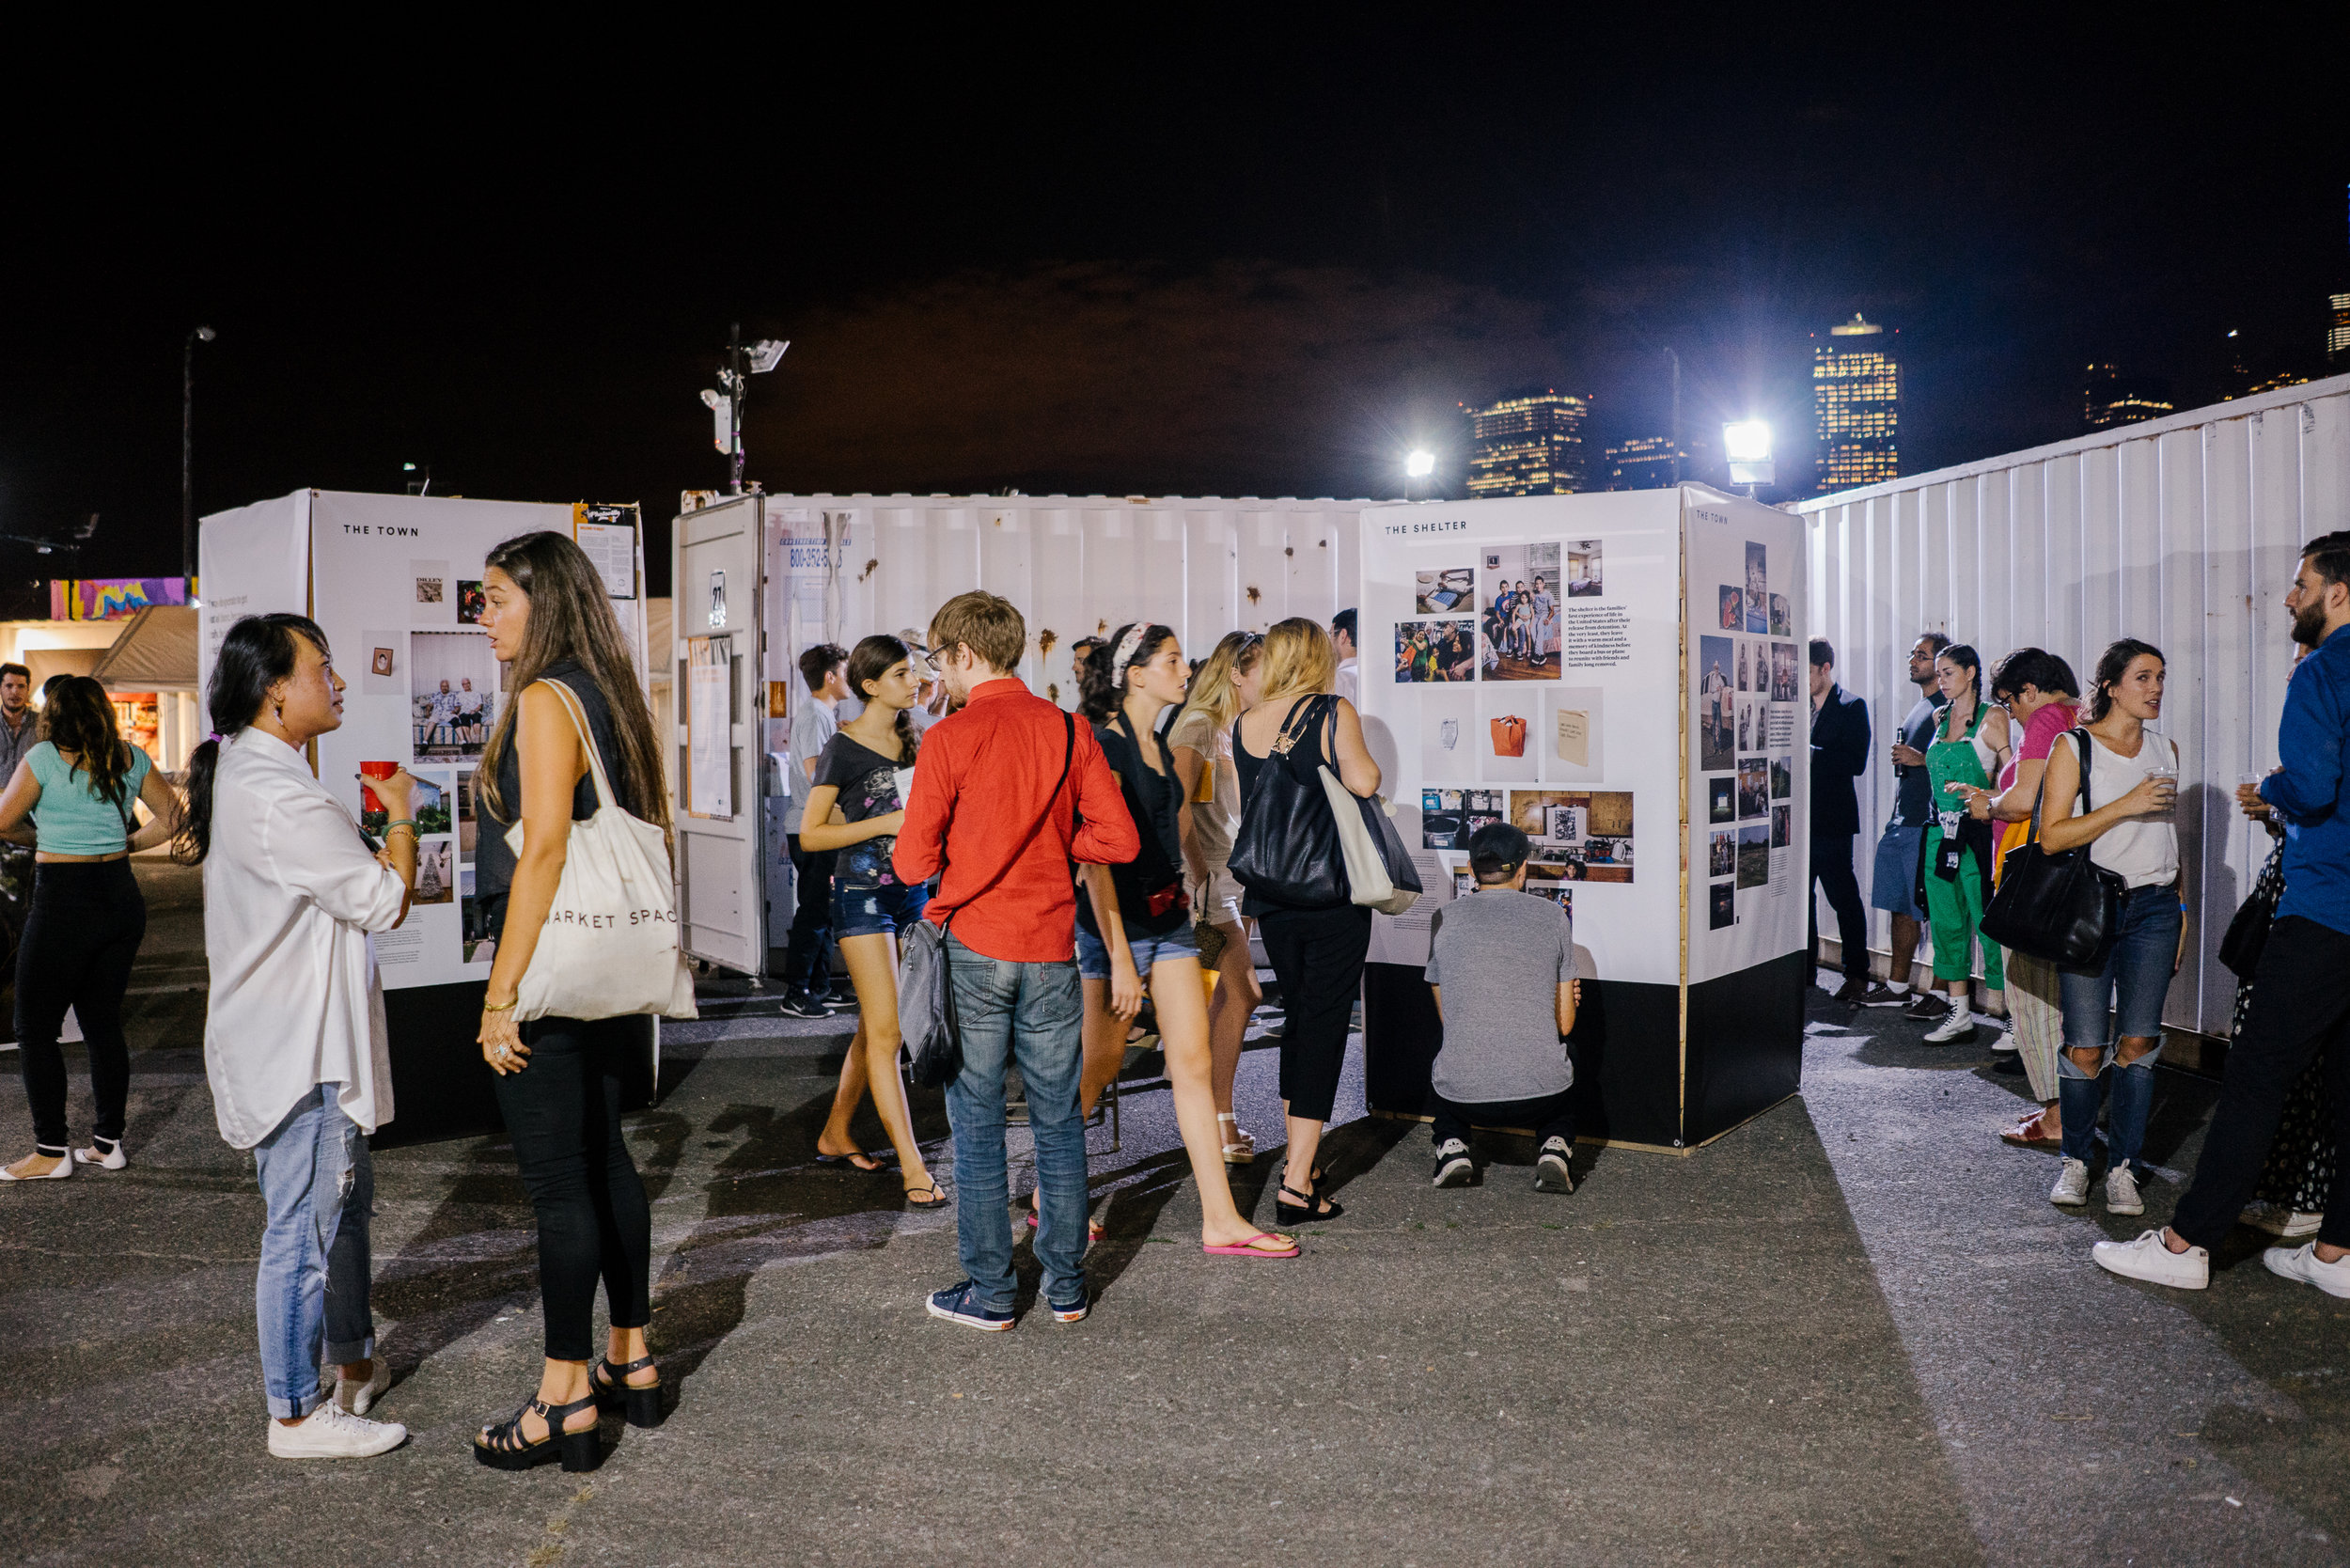 The Welcome to Dilley installation at Photoville, as seen on opening night.